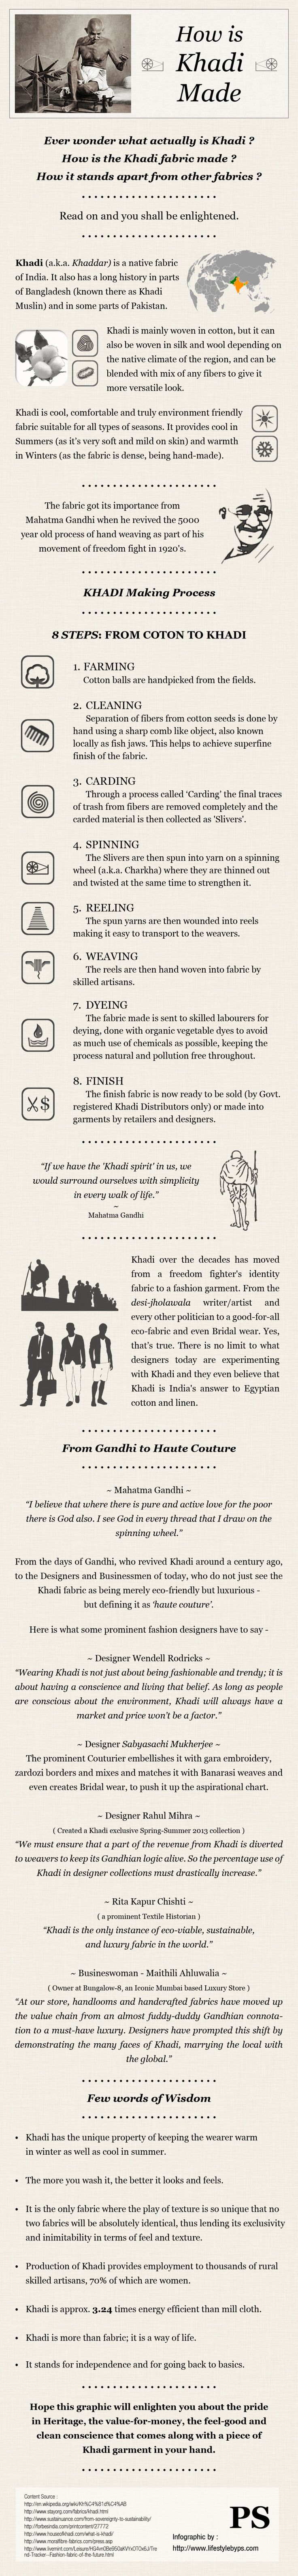 Infographic that sums up how Khadi is made into a wearable fabric - but also gives a little bit of the story behind the fabric and it's power during Gandhi's independence movement.